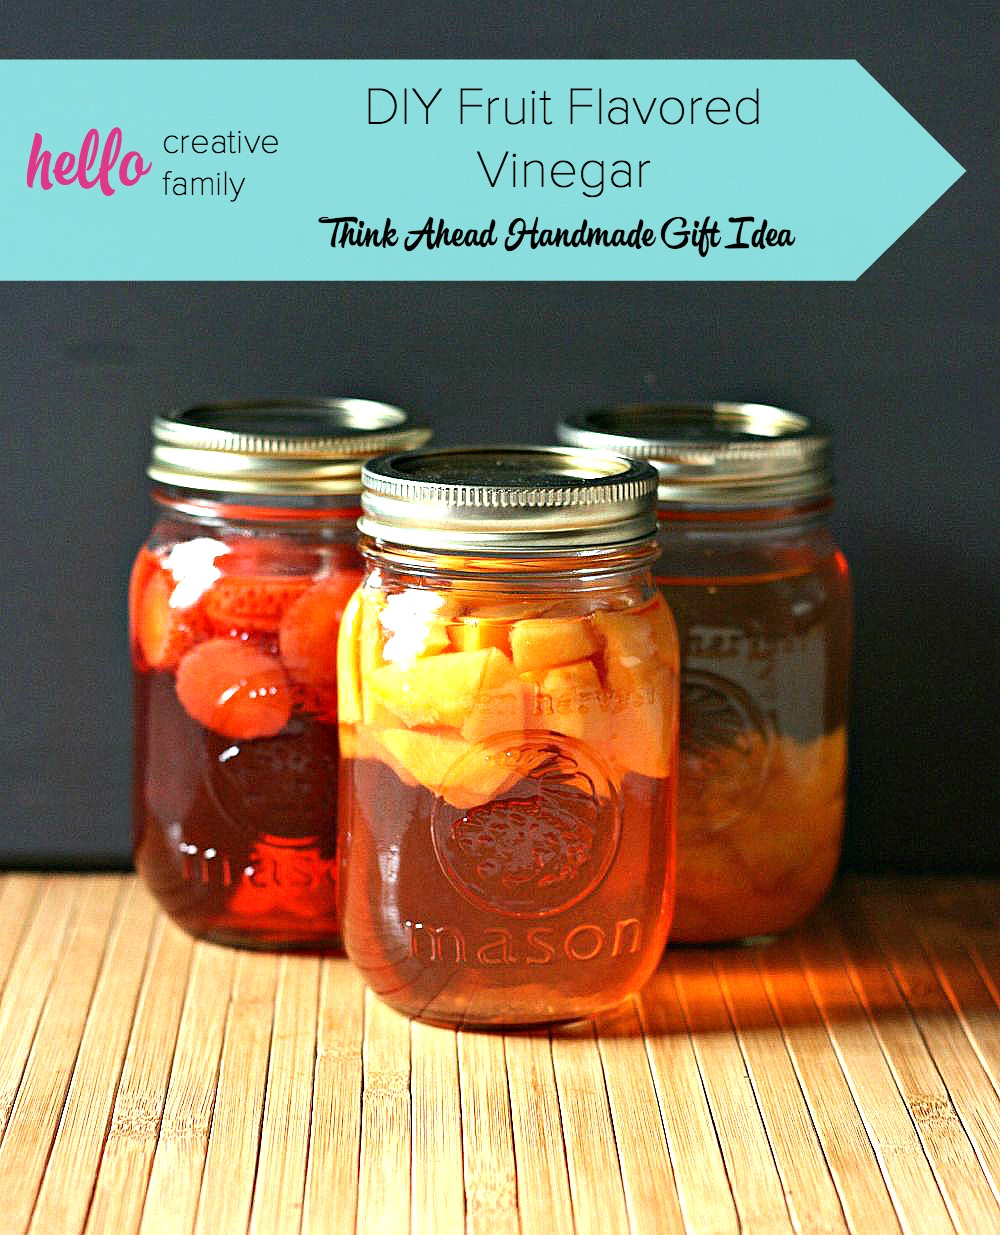 """Another great handmade gift idea from Hello Creative Family. You'll want to check out their """"think ahead handmade gift ideas"""" series. Learn how to make fruit flavored vinegar using berries or soft fleshed fruit. Perfect for foodie Christmas gifts. She uses Strawberry Vinegar, Peach Vinegar & Plum Vinegar as examples. I want to try cherry!"""